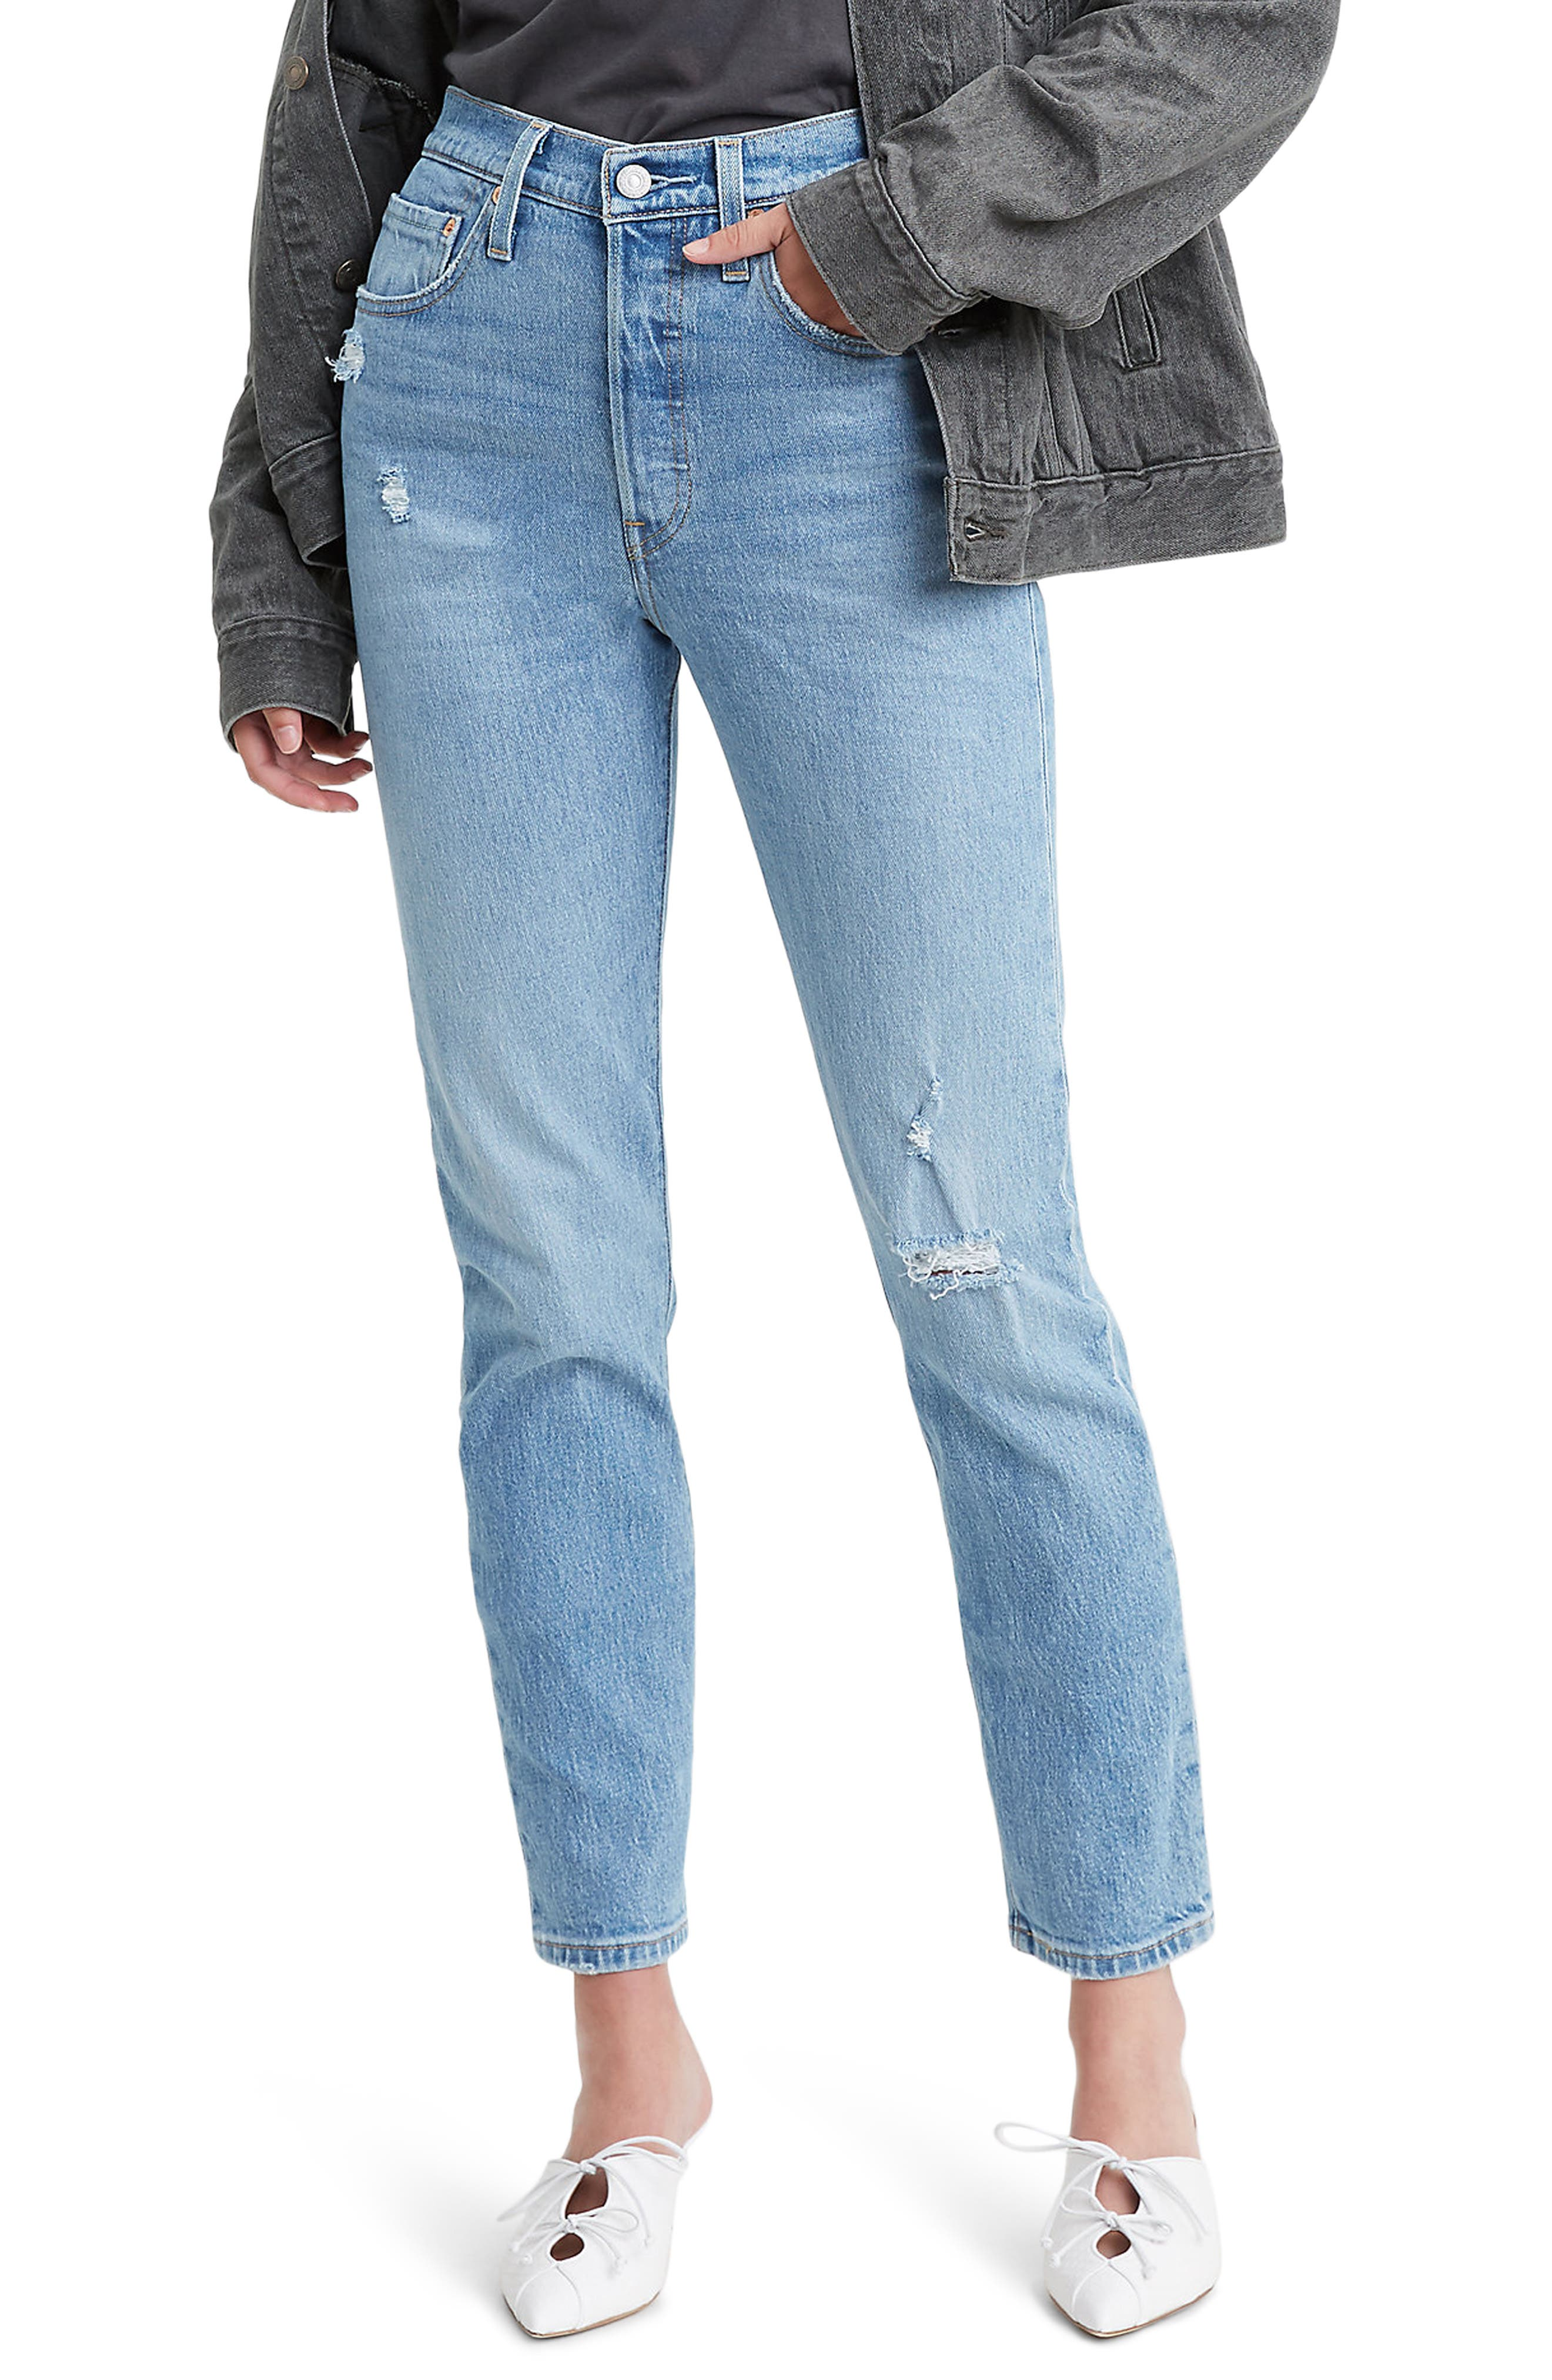 Women's Levi's 501 High Waist Ripped Ankle Skinny Jeans,  33 x 28 - Blue